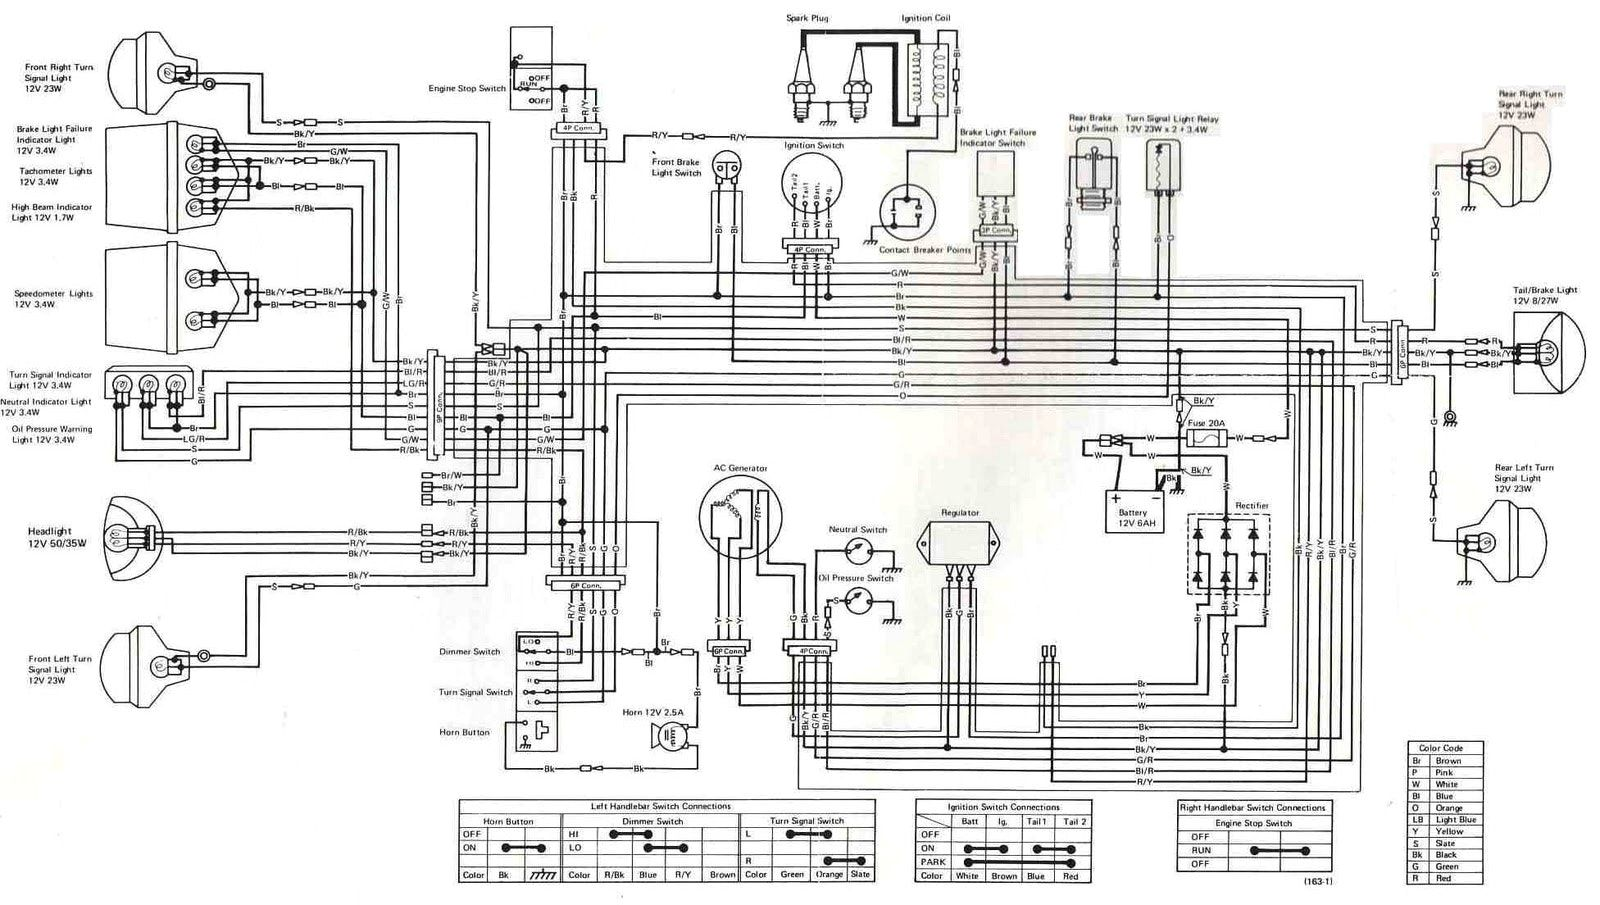 1975 Kawasaki 100 Wiring Diagram - Trane Xl 1200 Wiring Diagram for Wiring  Diagram SchematicsWiring Diagram Schematics